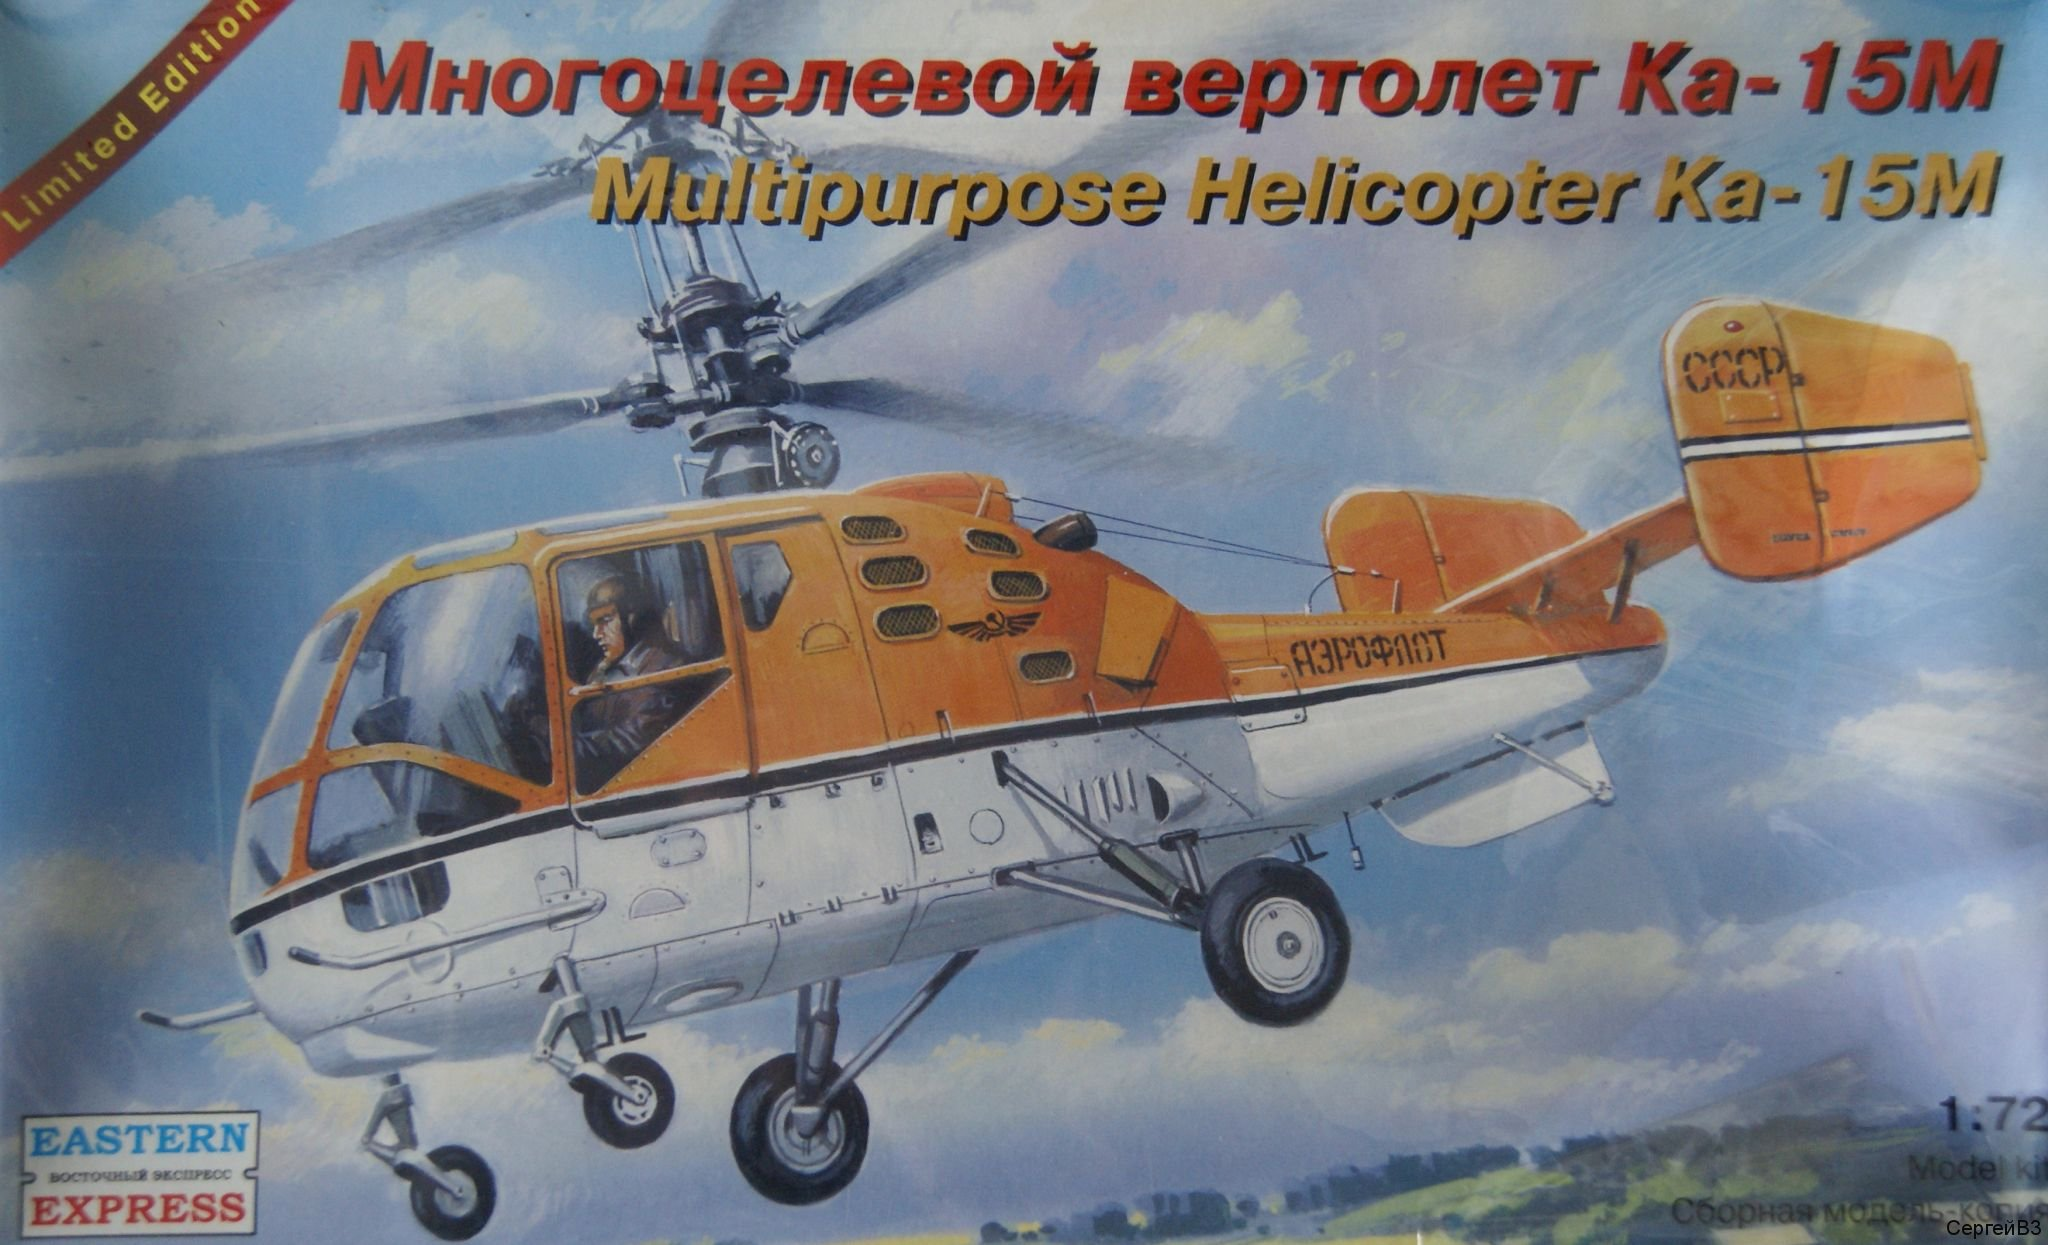 Multipurpose Helicopter Ka-15M